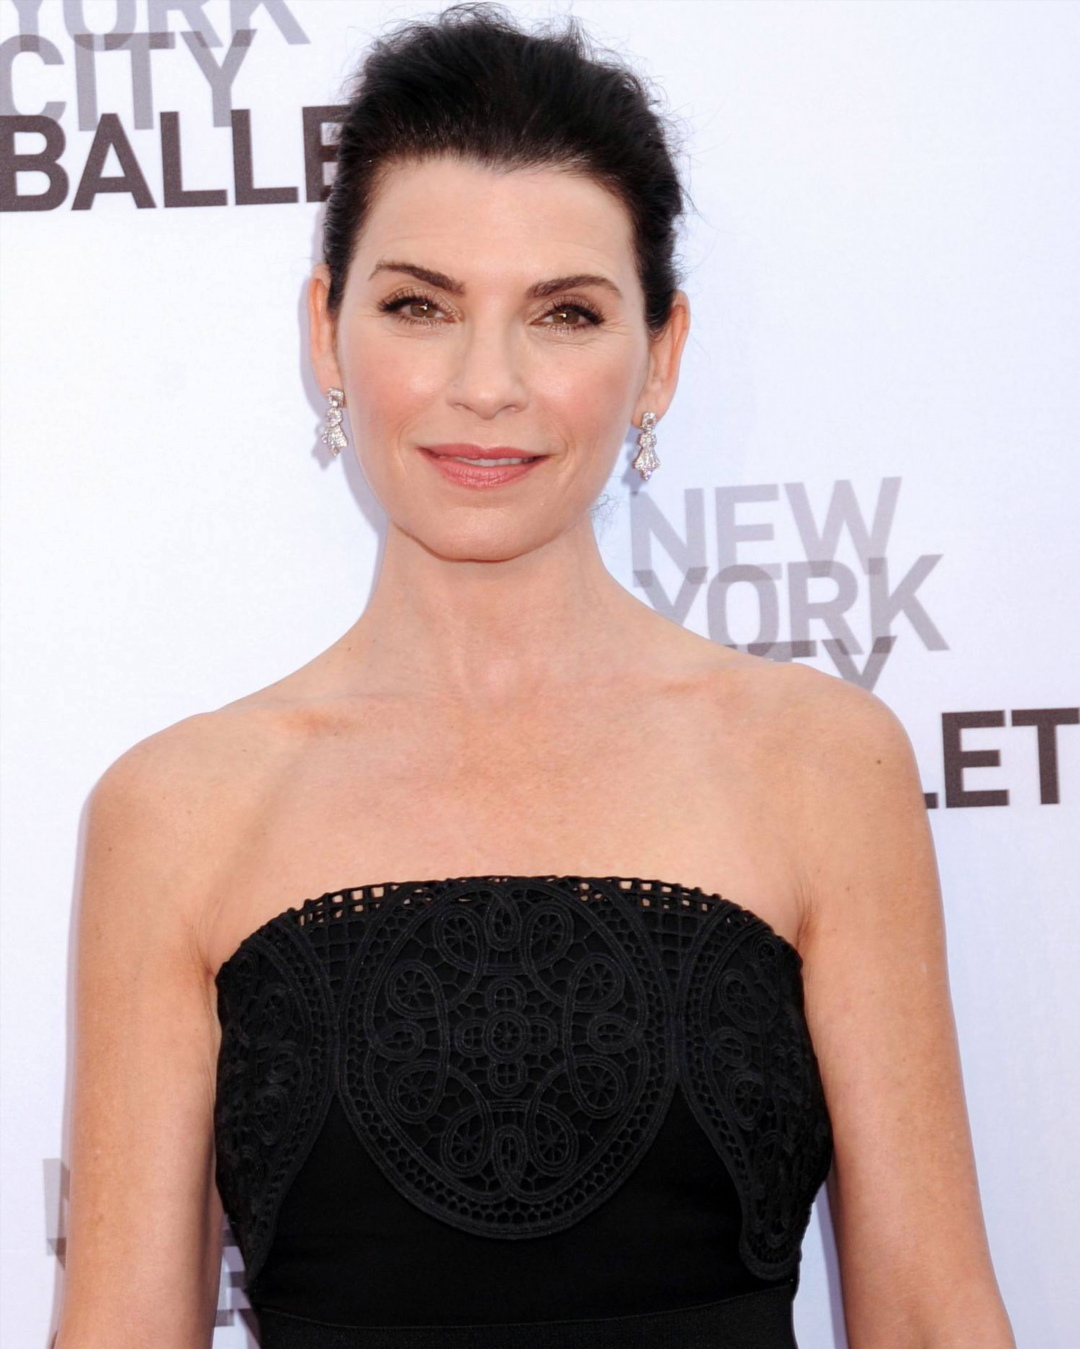 Julianna Margulies on Awards